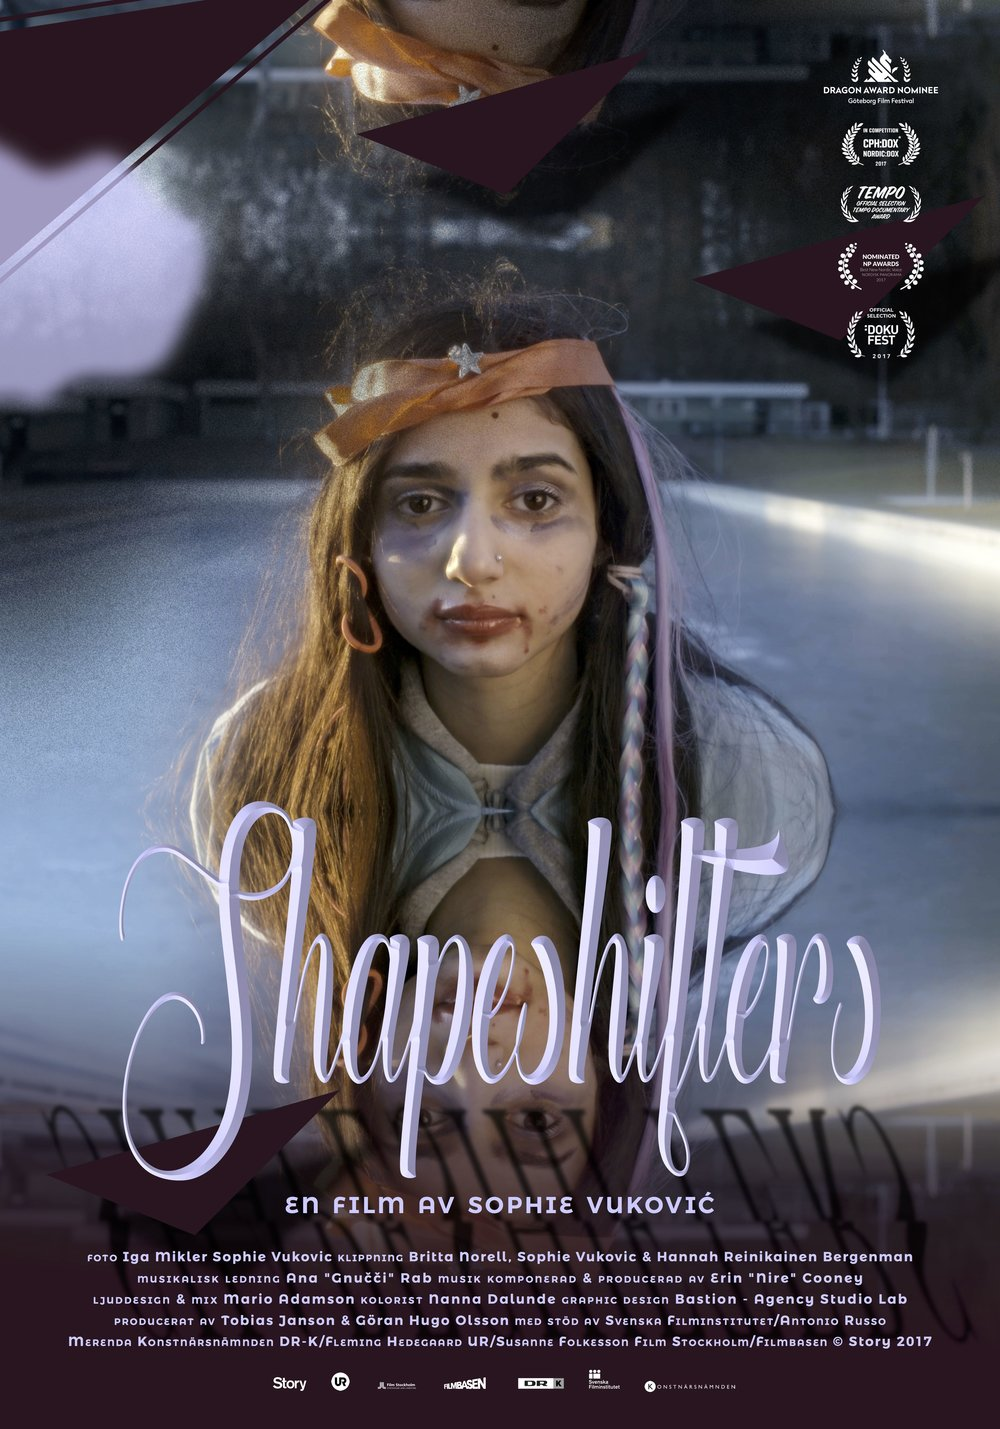 Shapeshifters poster 22aug17 70 x 100 kopia.jpg